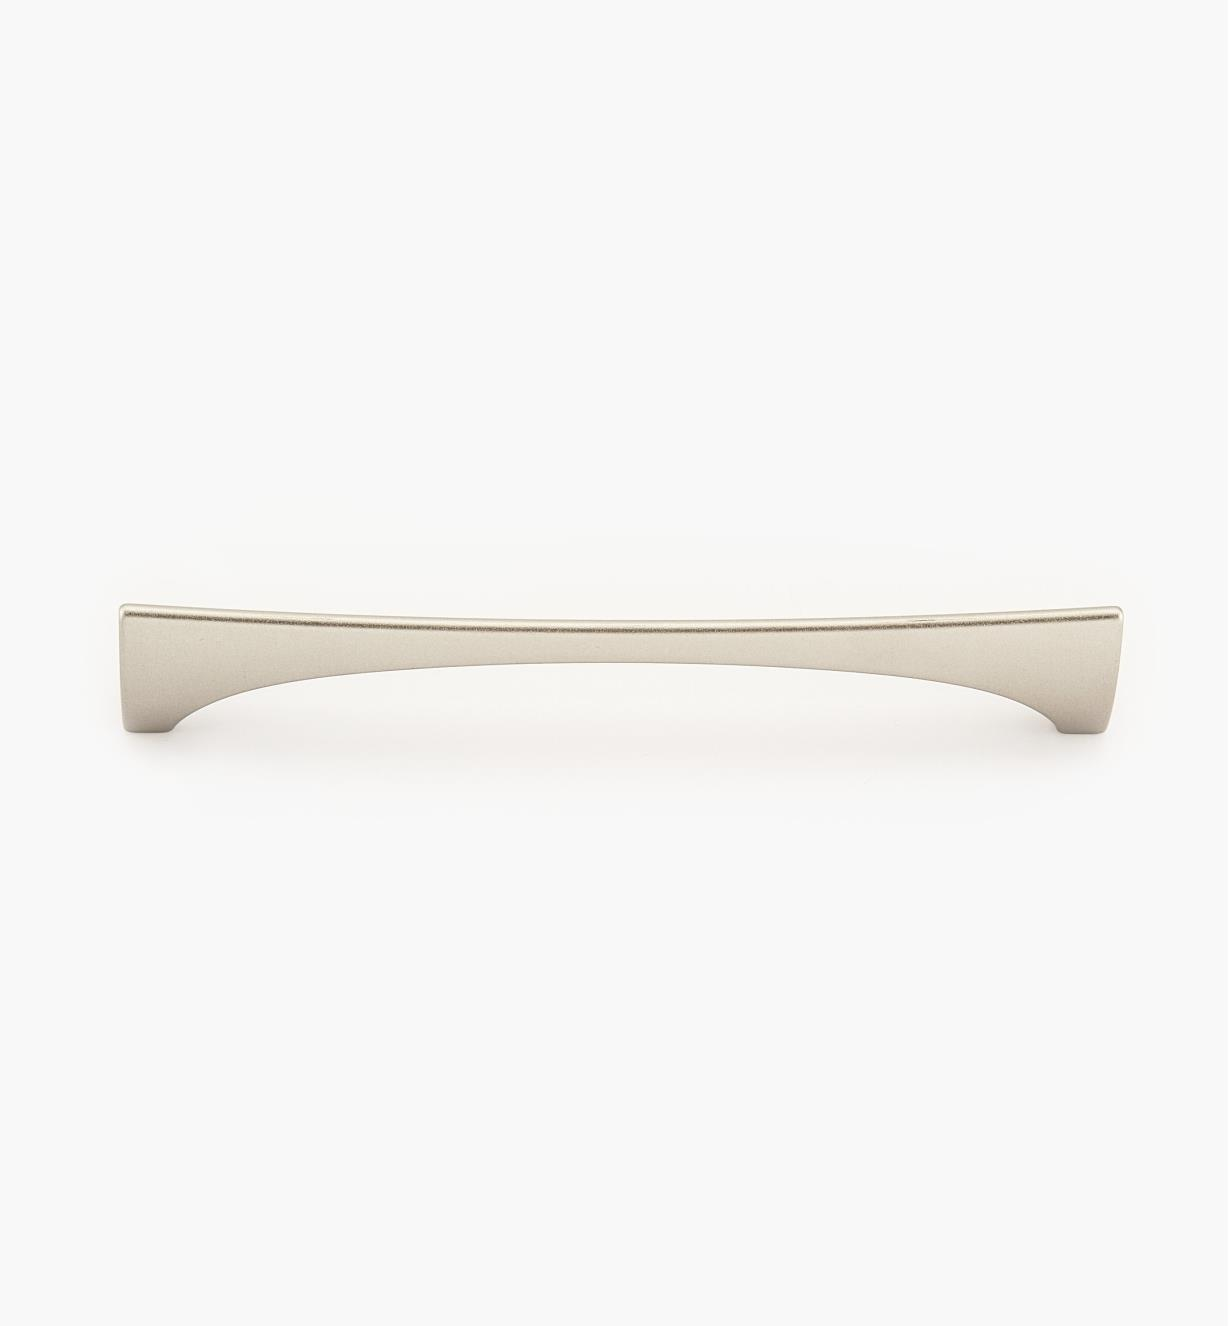 02W3912 - Niteroi 160mm Palladium Handle